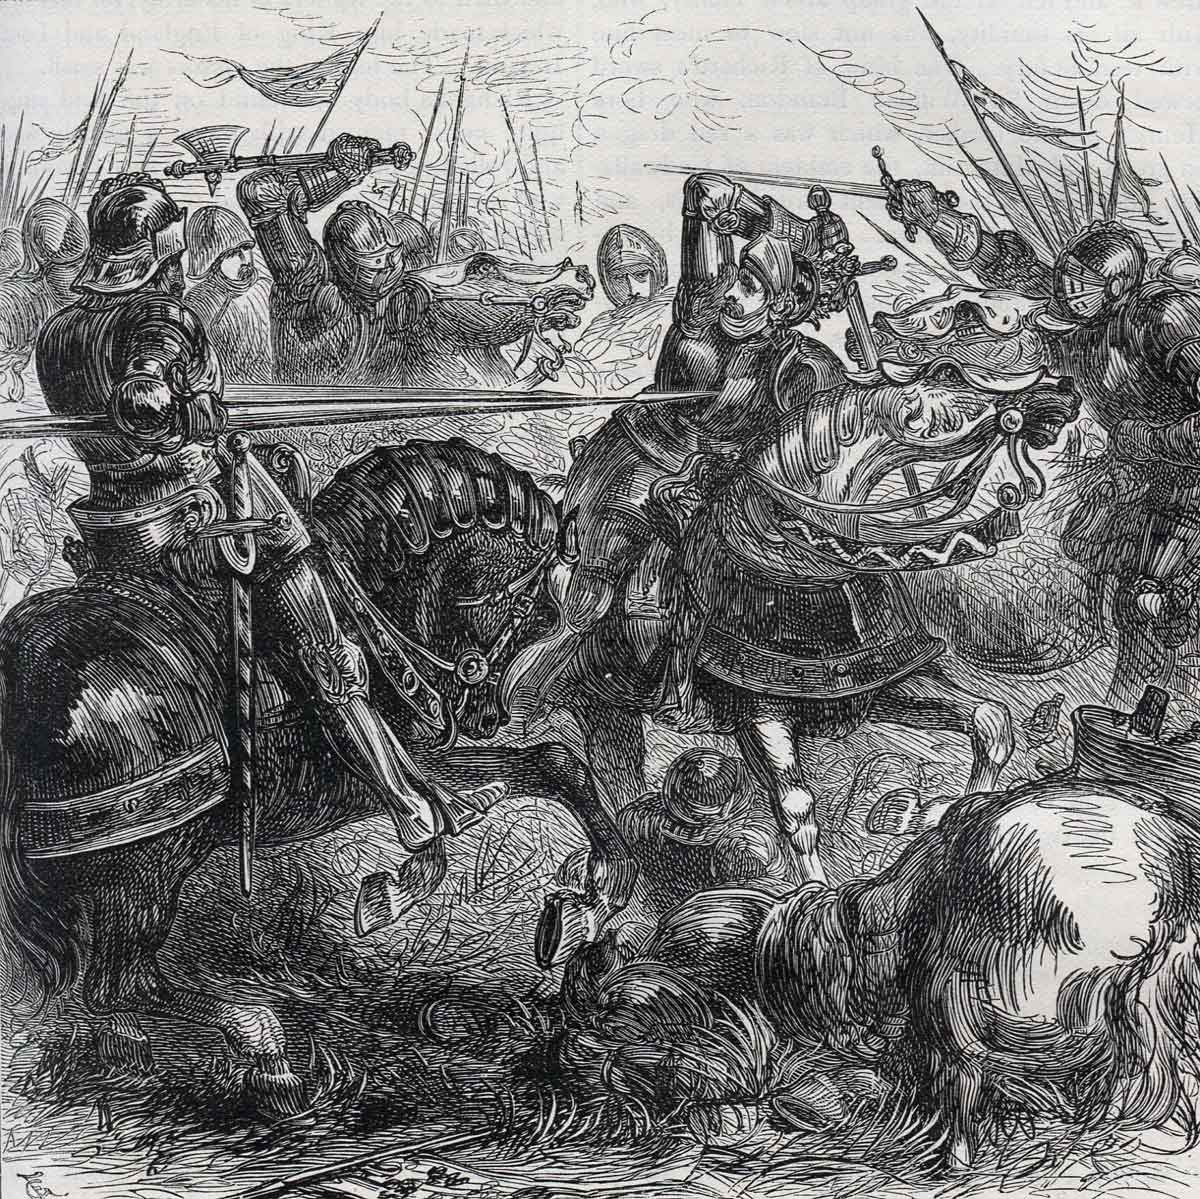 Death of King Richard III at the Battle of Bosworth Field on 22nd August 1485 in the Wars of the Roses